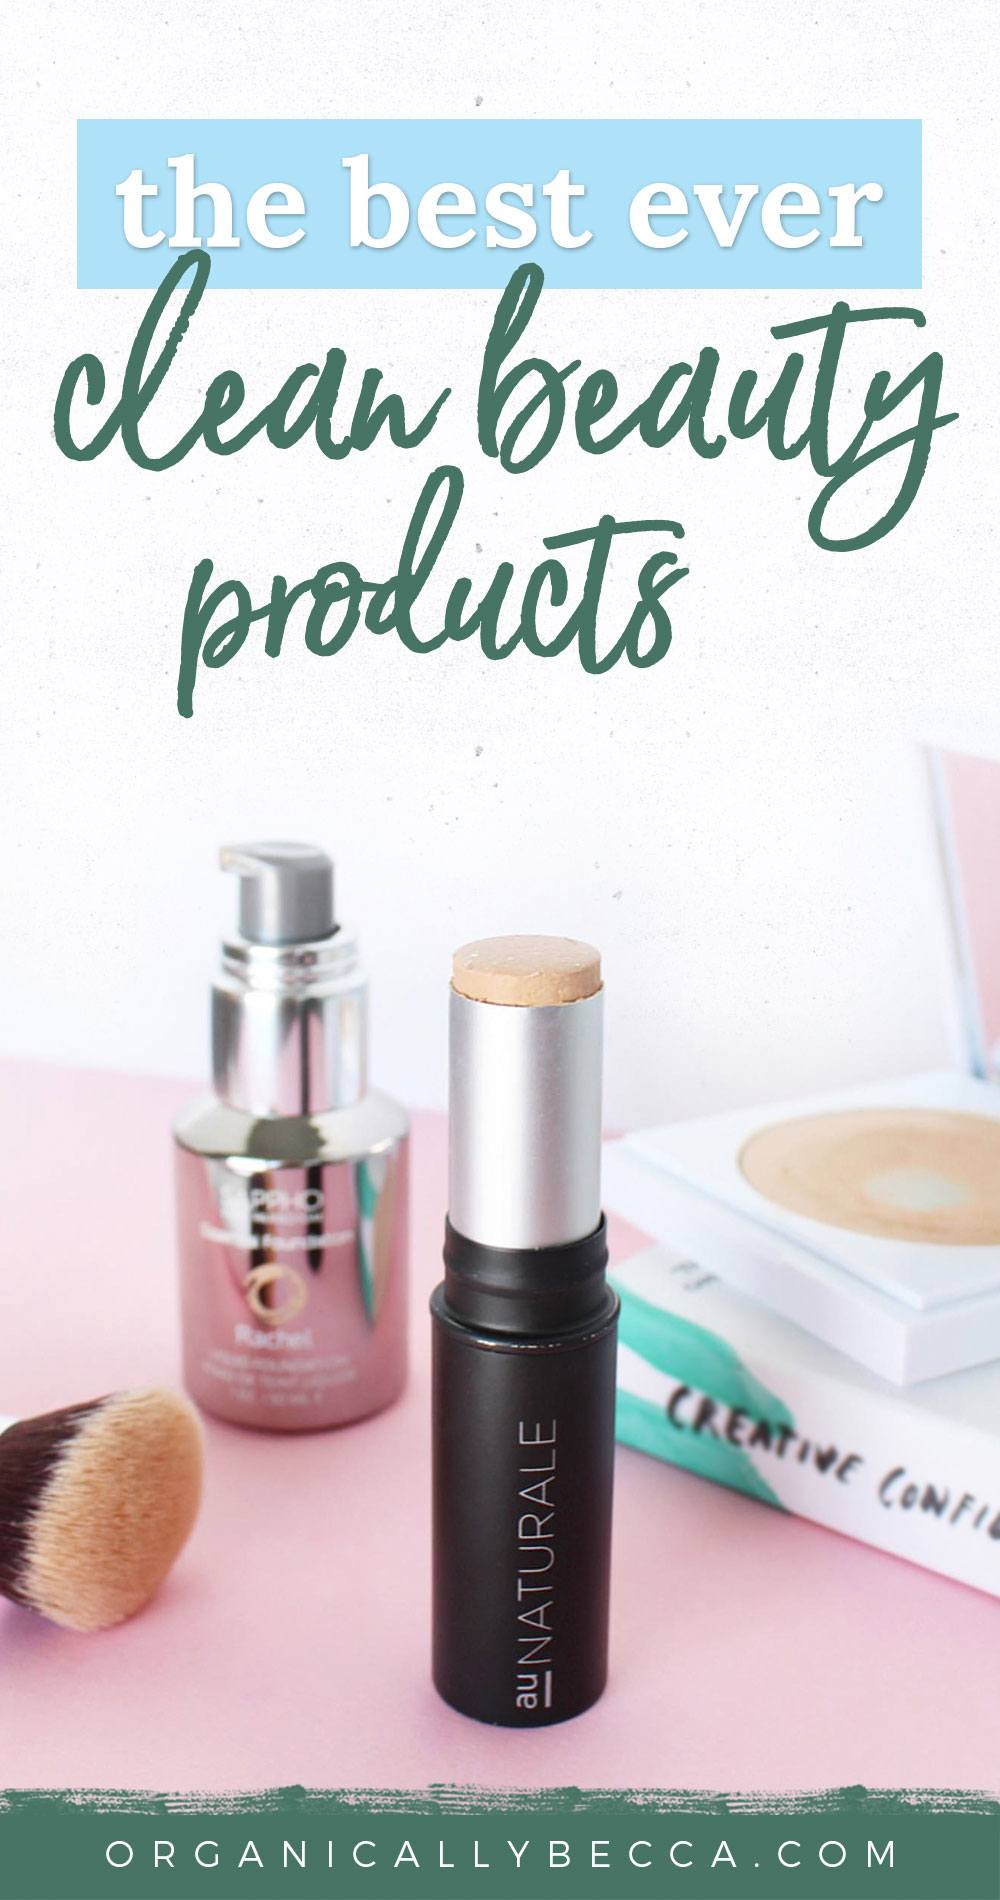 Becca's Fave Natural Products